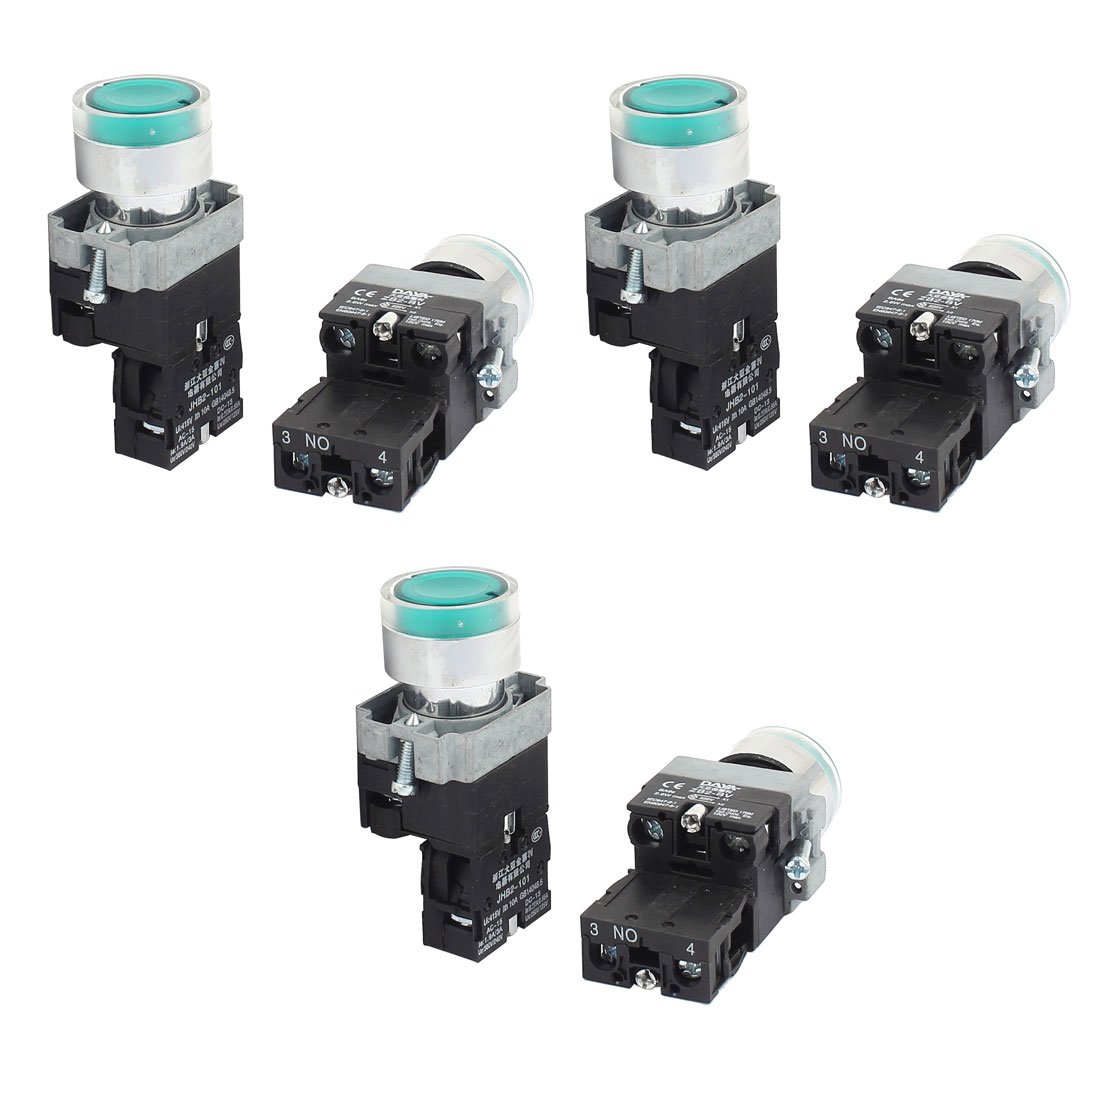 AC 415V 10A Momentary NO Green Light Push Button Switch Contact Block 6PCS